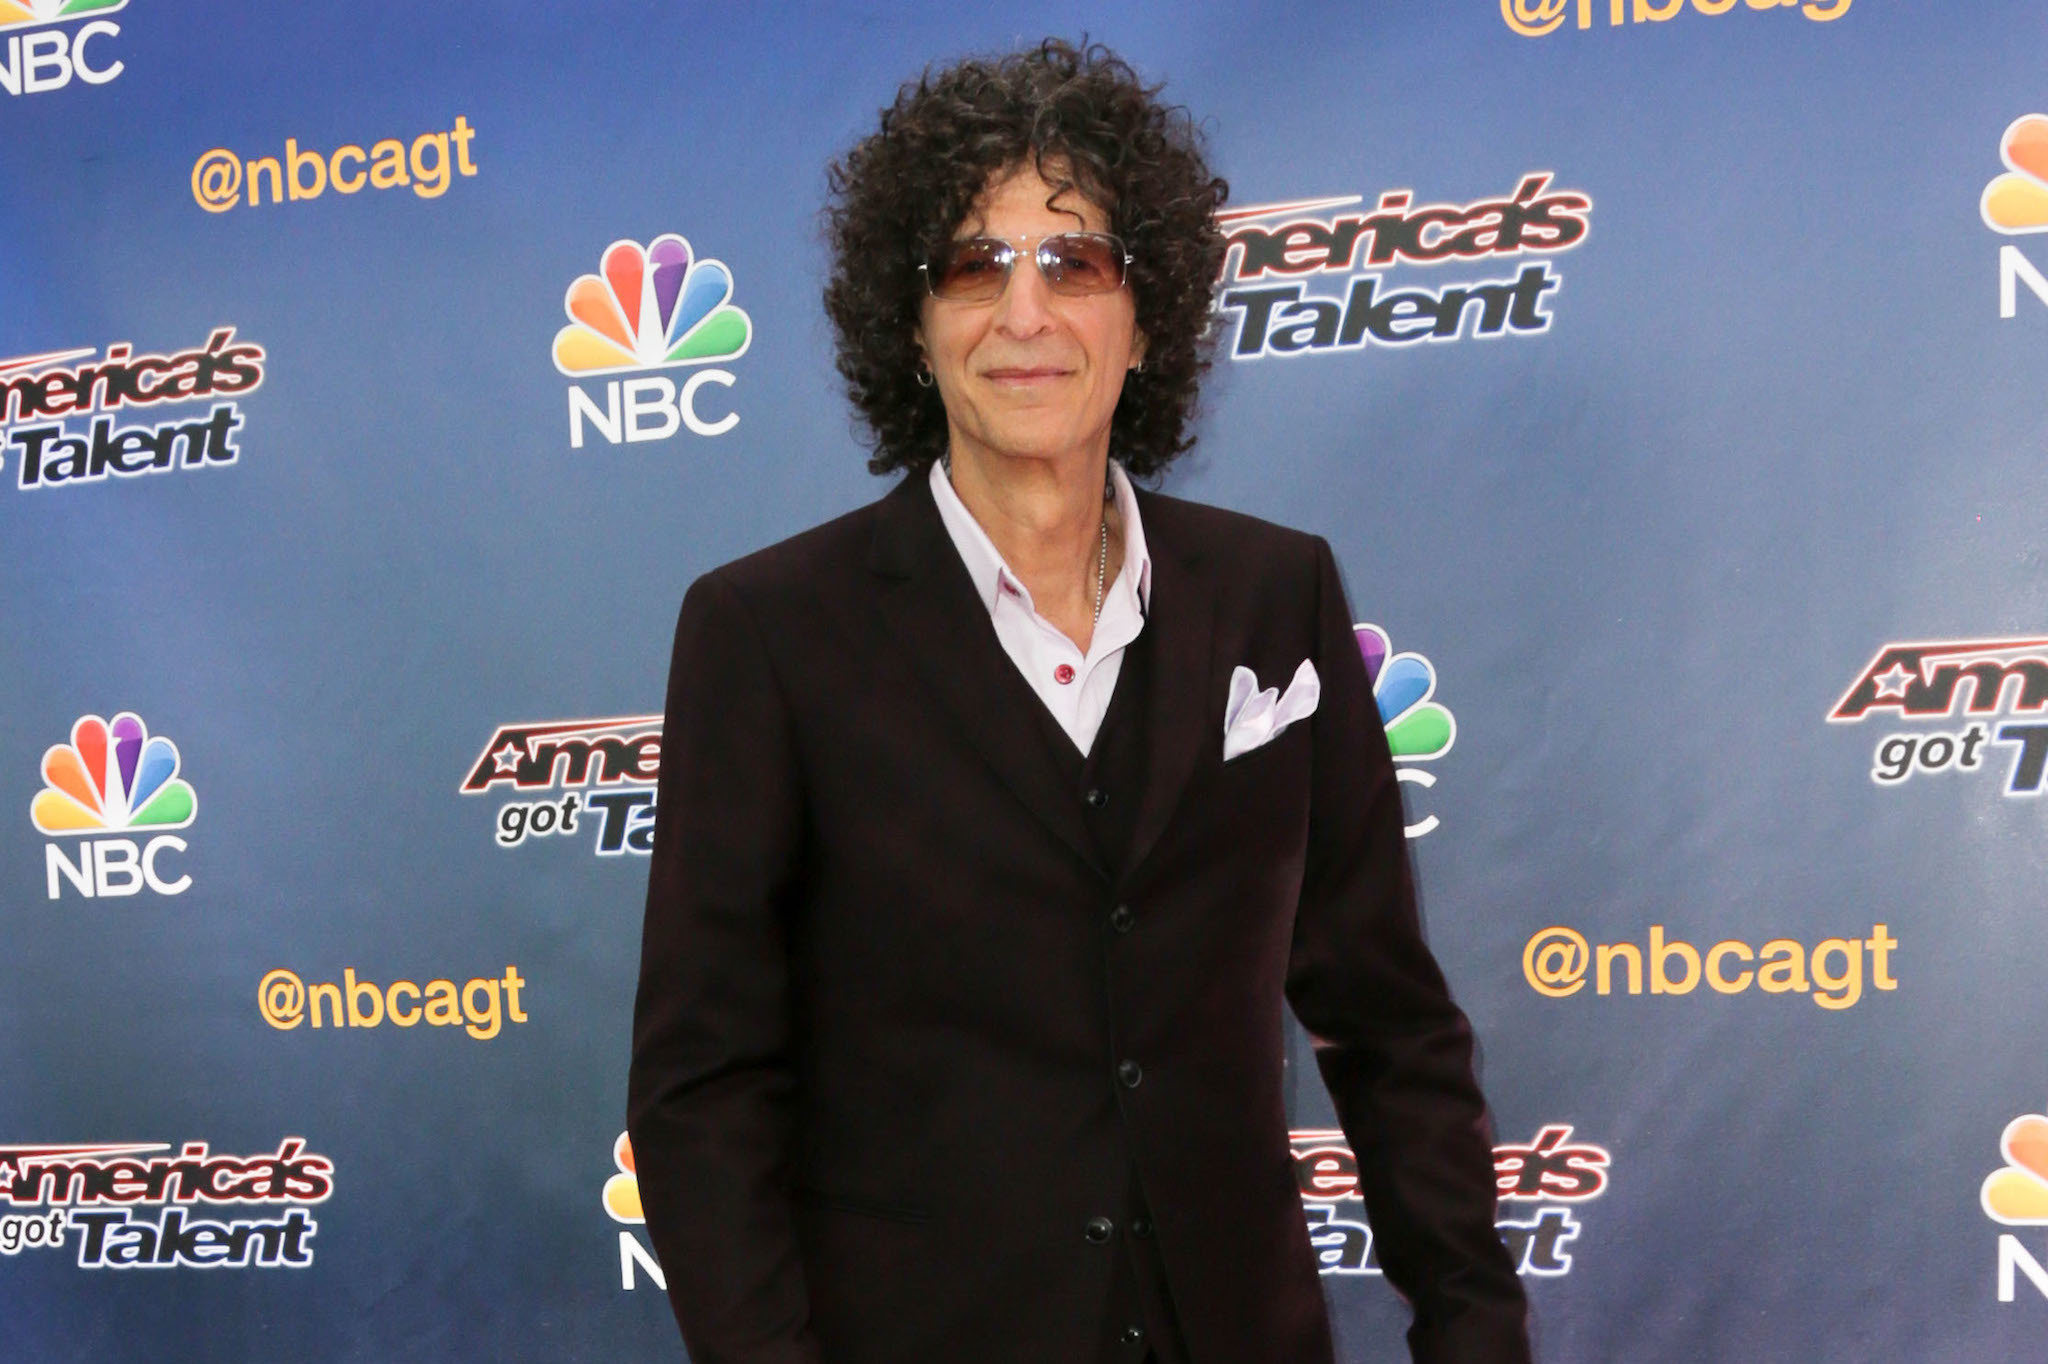 Howard Stern and tons of other SiriusXM stations are free